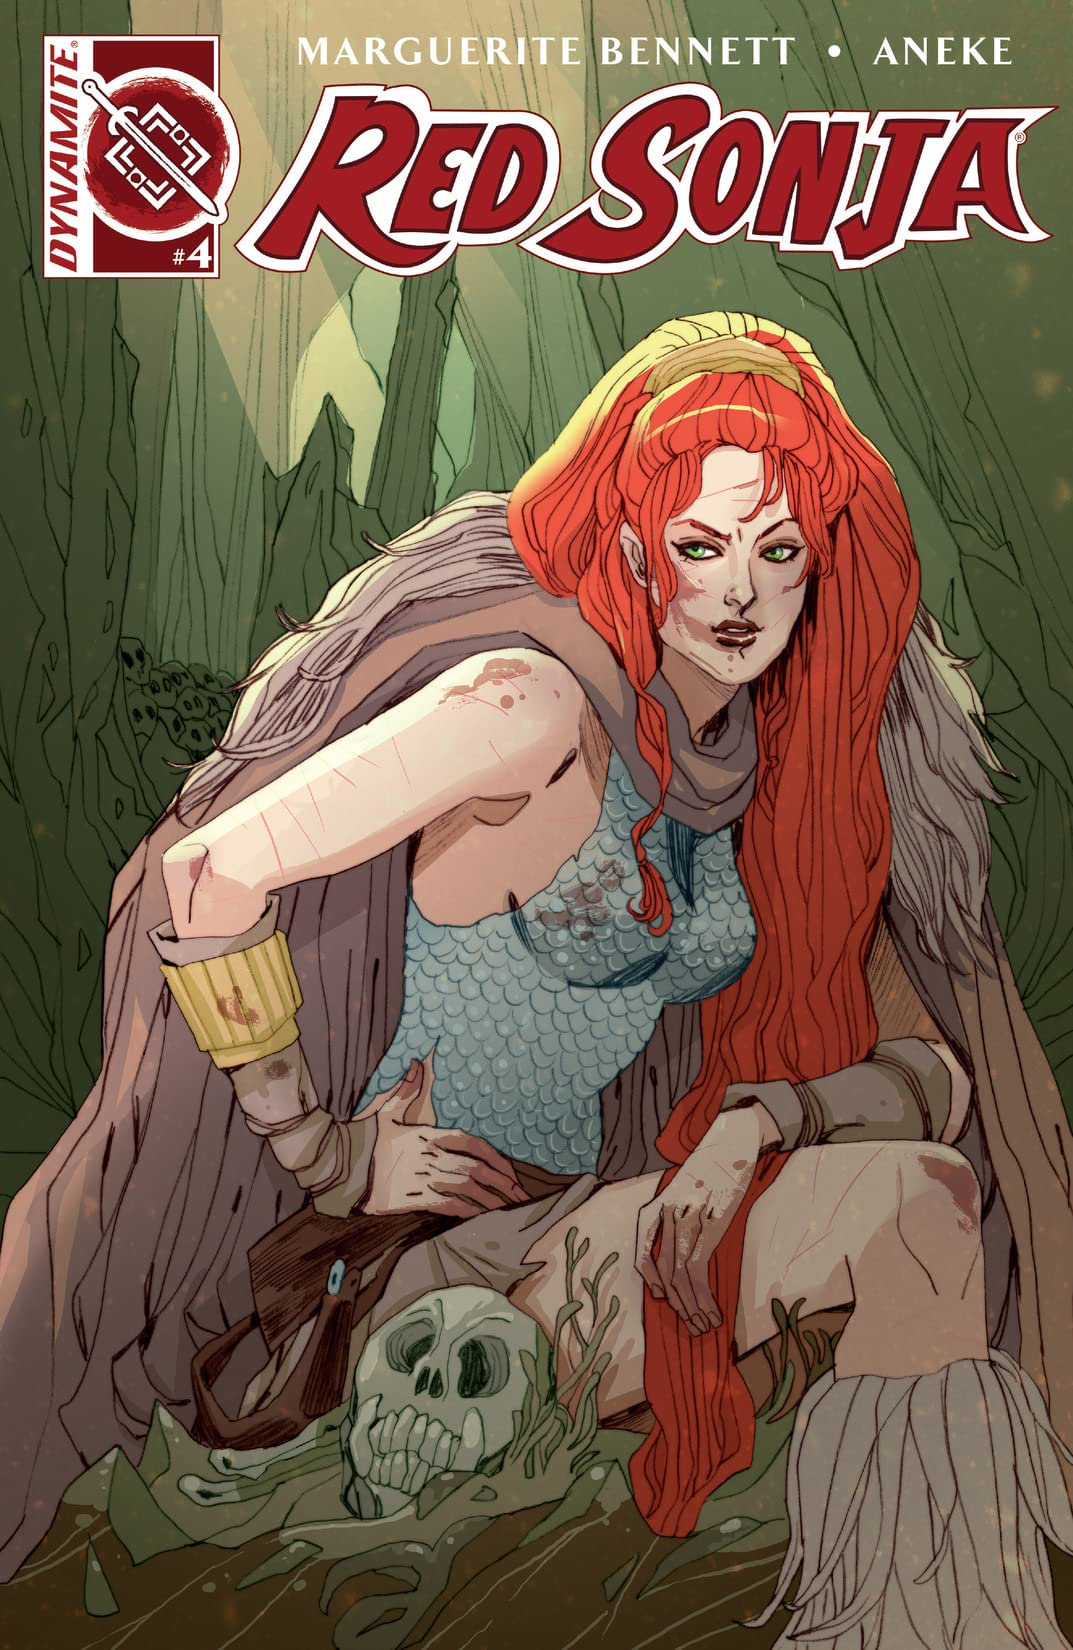 Red Sonja Vol. 3 #4: Digital Exclusive Edition